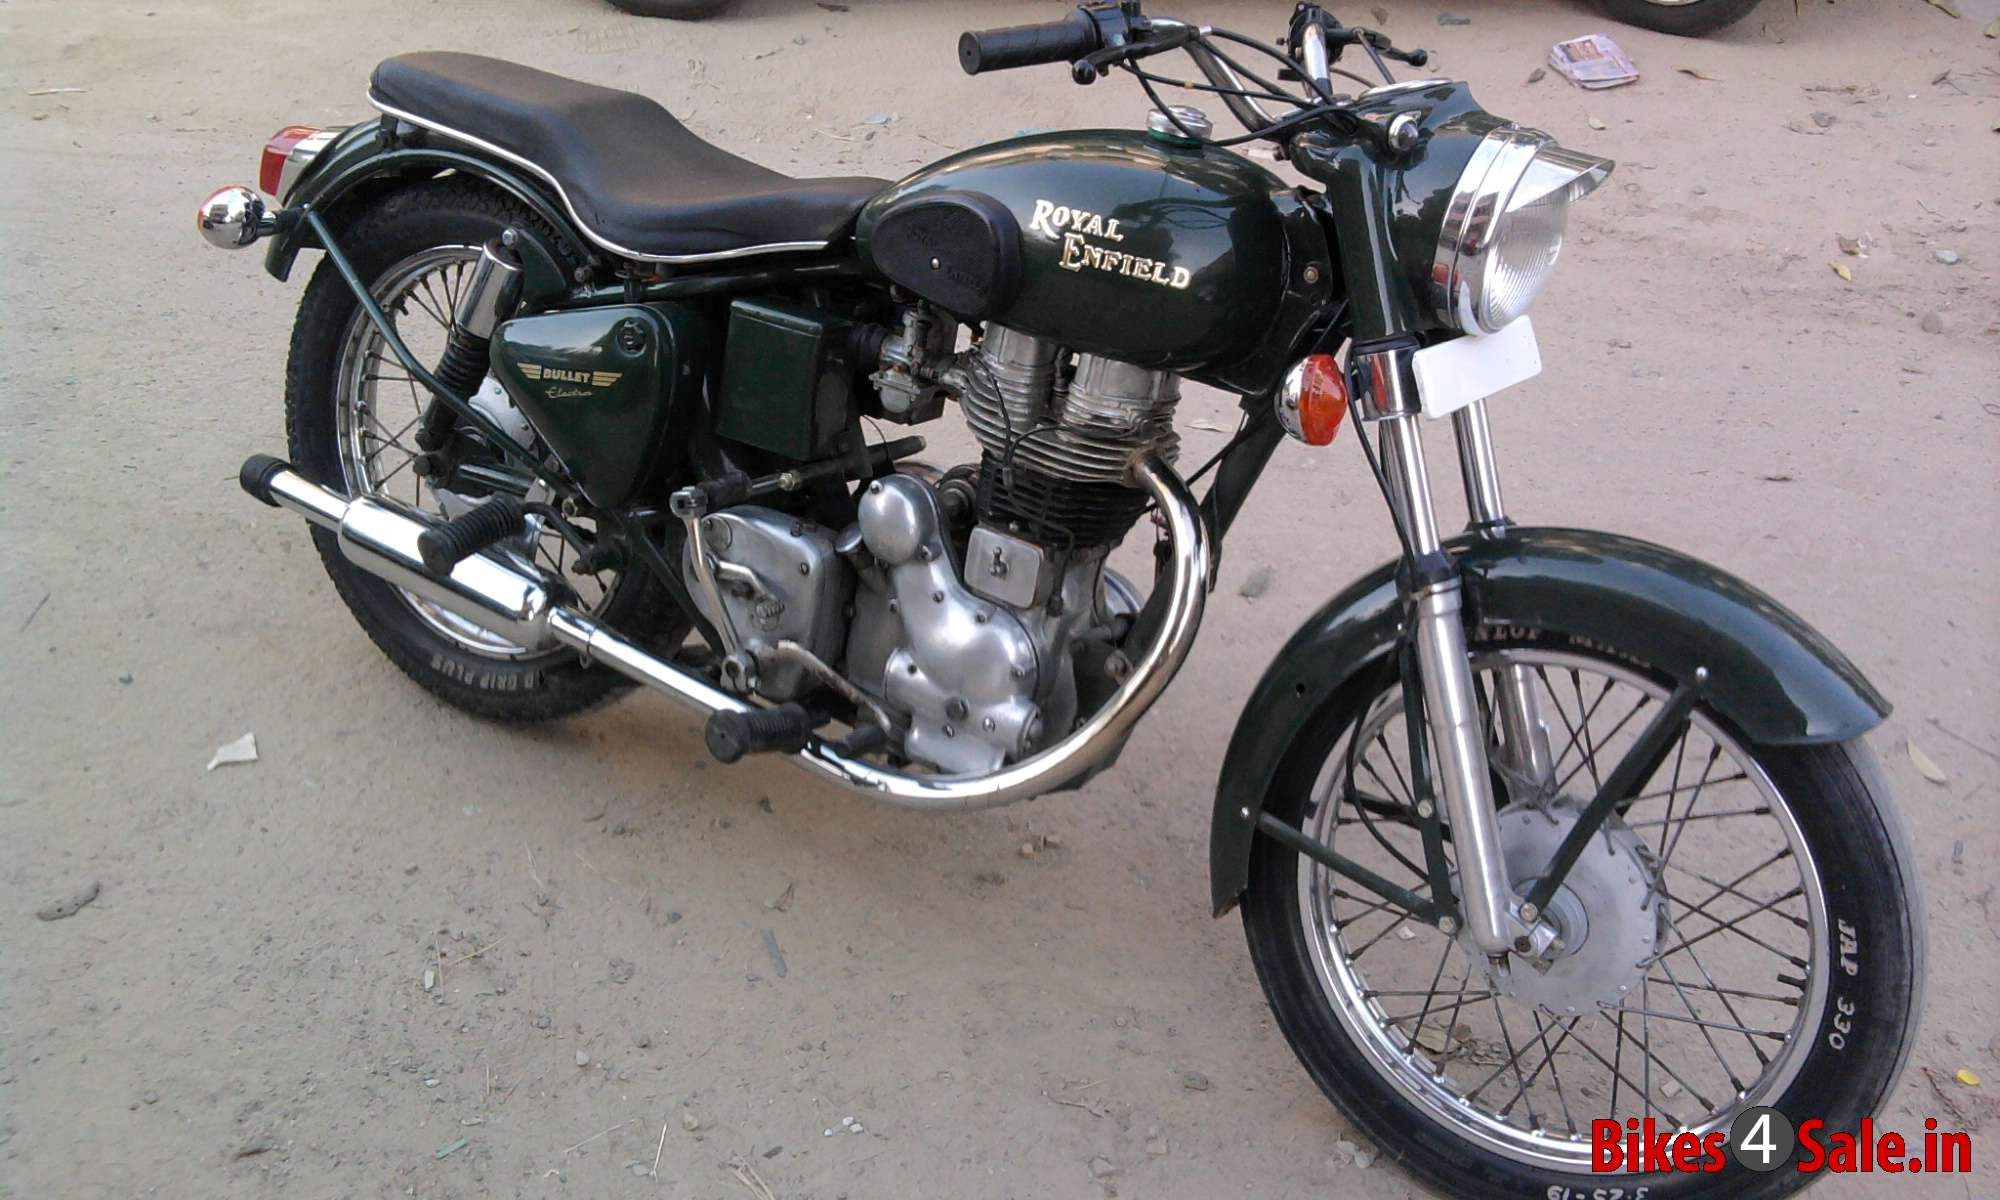 Royal Enfield Bullet 350 Army 1990 images #122696